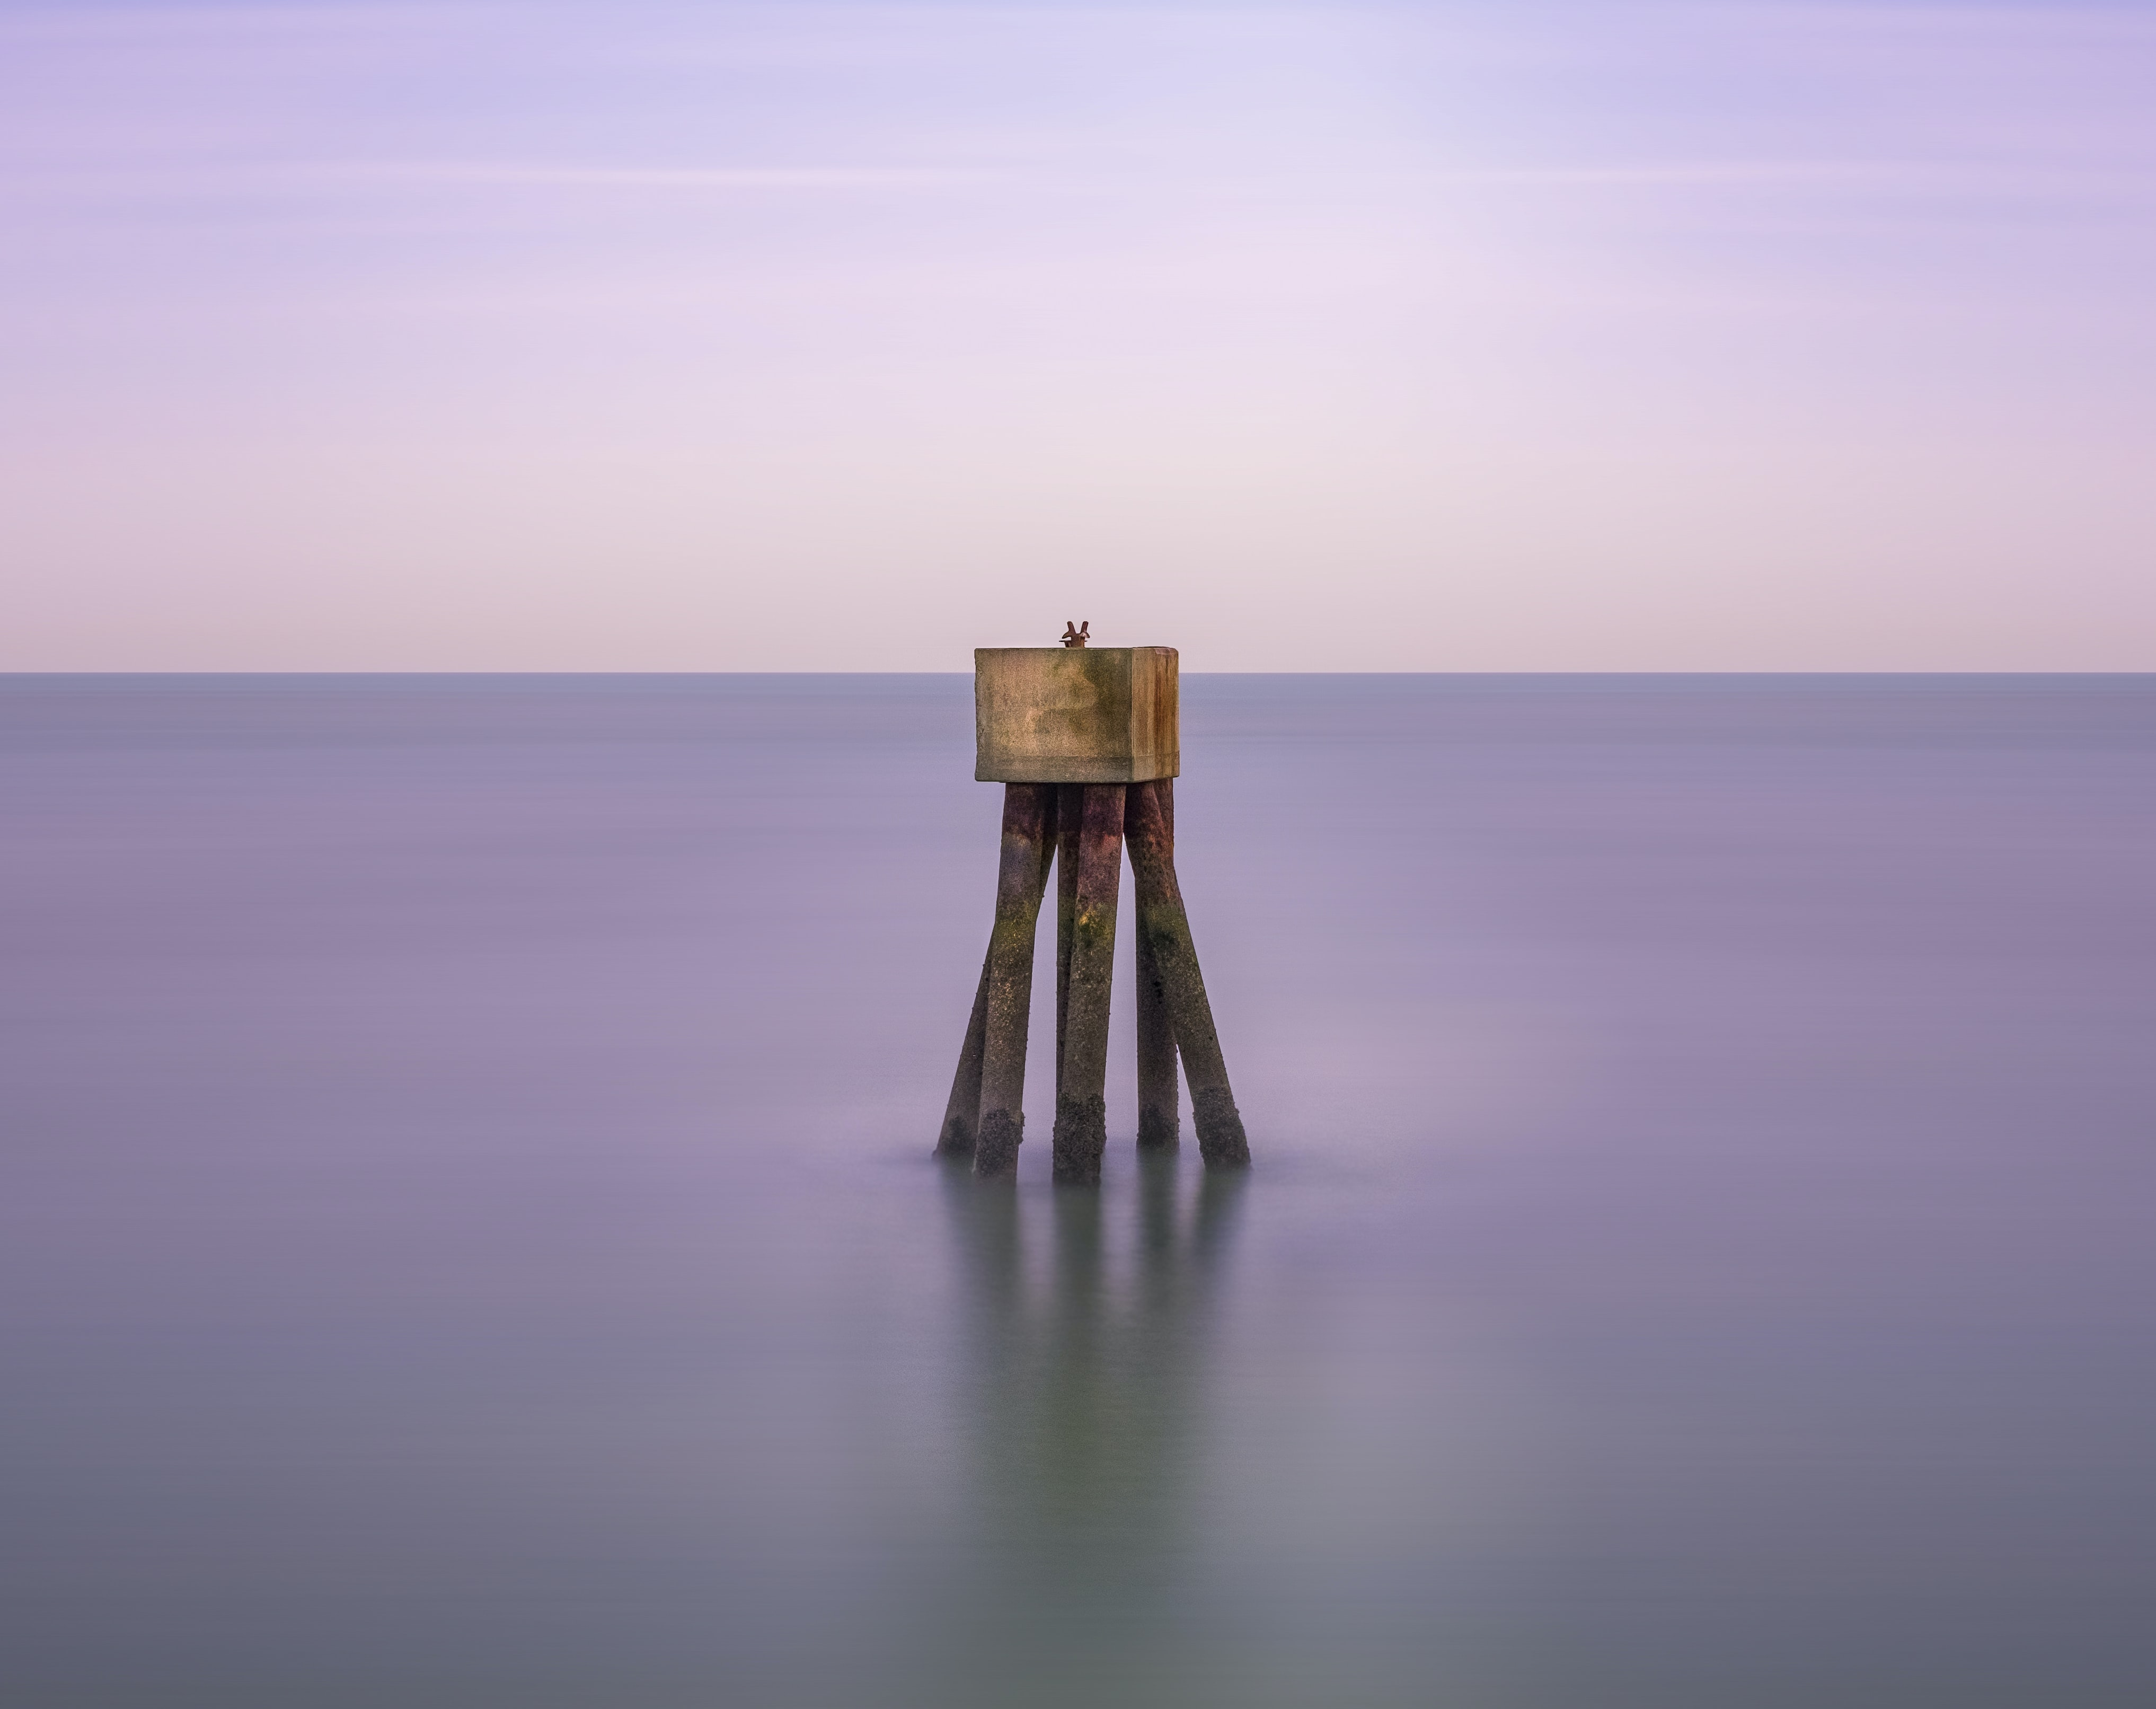 brown wooden sea stand during daytime